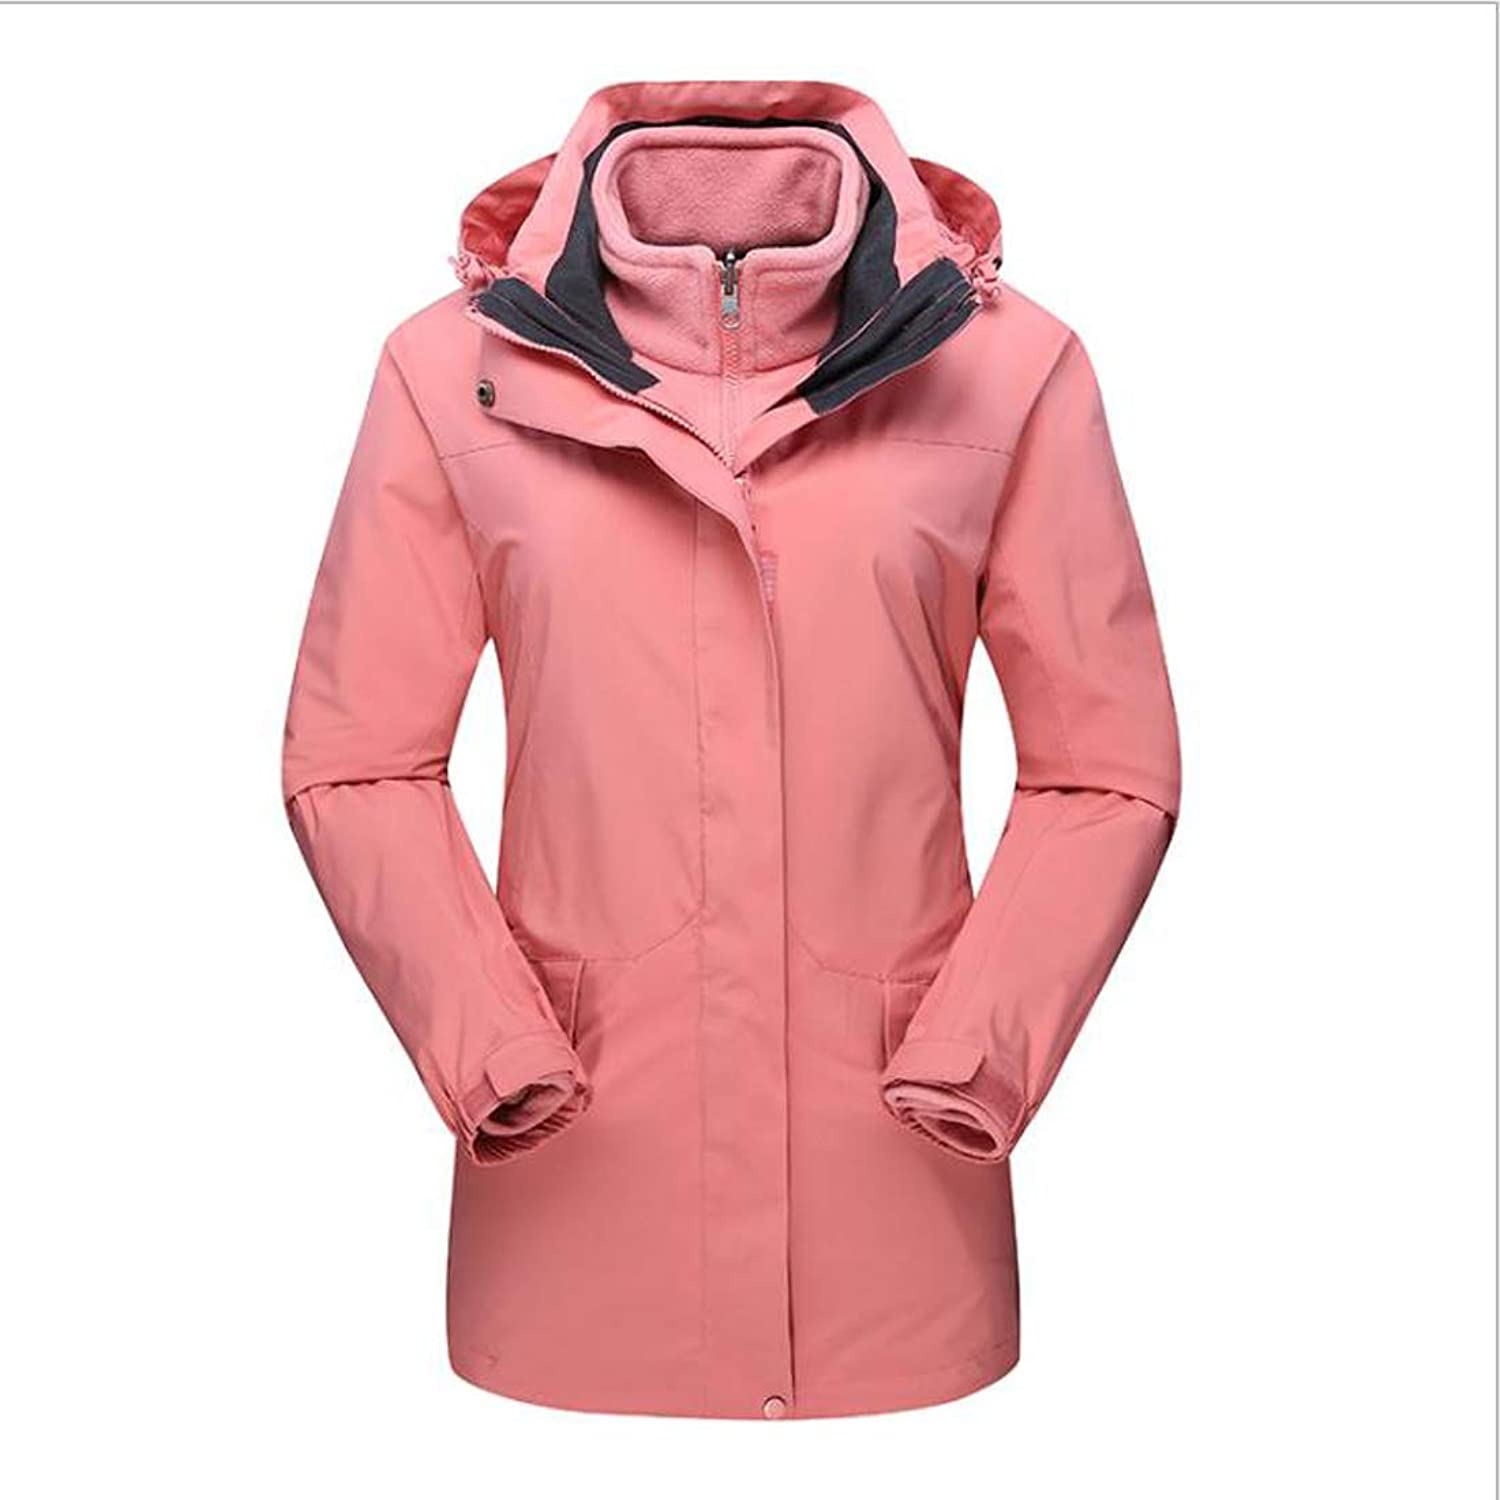 CEFULTY Outdoor Ladies' Jacket, TwoPiece Long Section, Warm Winter Warm Padded Trench Coat (color   01, Size   XXL)